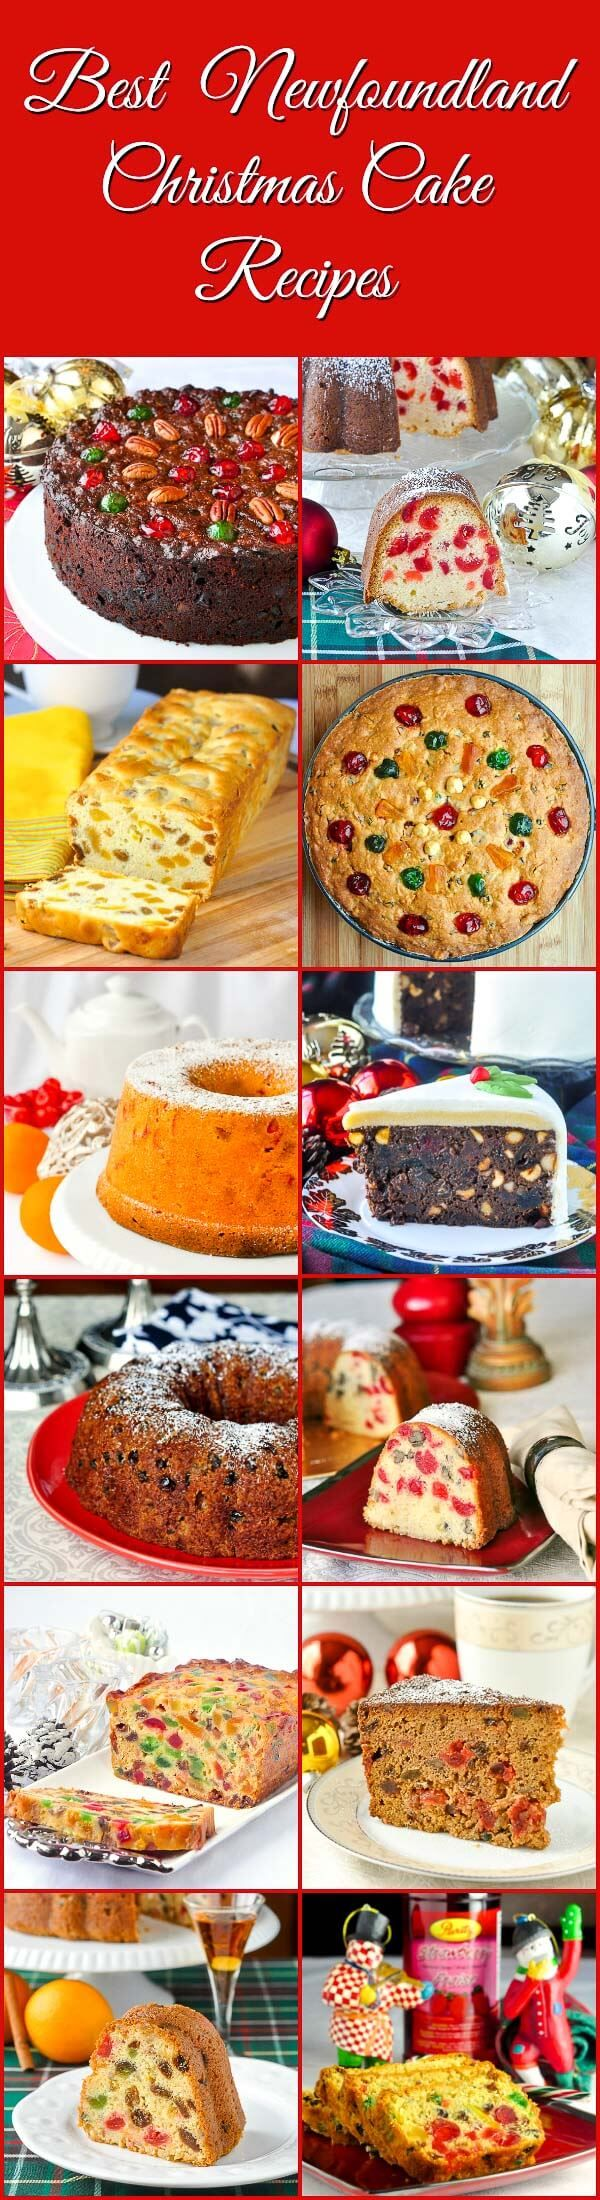 Best Newfoundland Christmas Cake Recipes - a collection of some favourite recipes from my childhood plus new twists on tried & true traditional fruitcake.